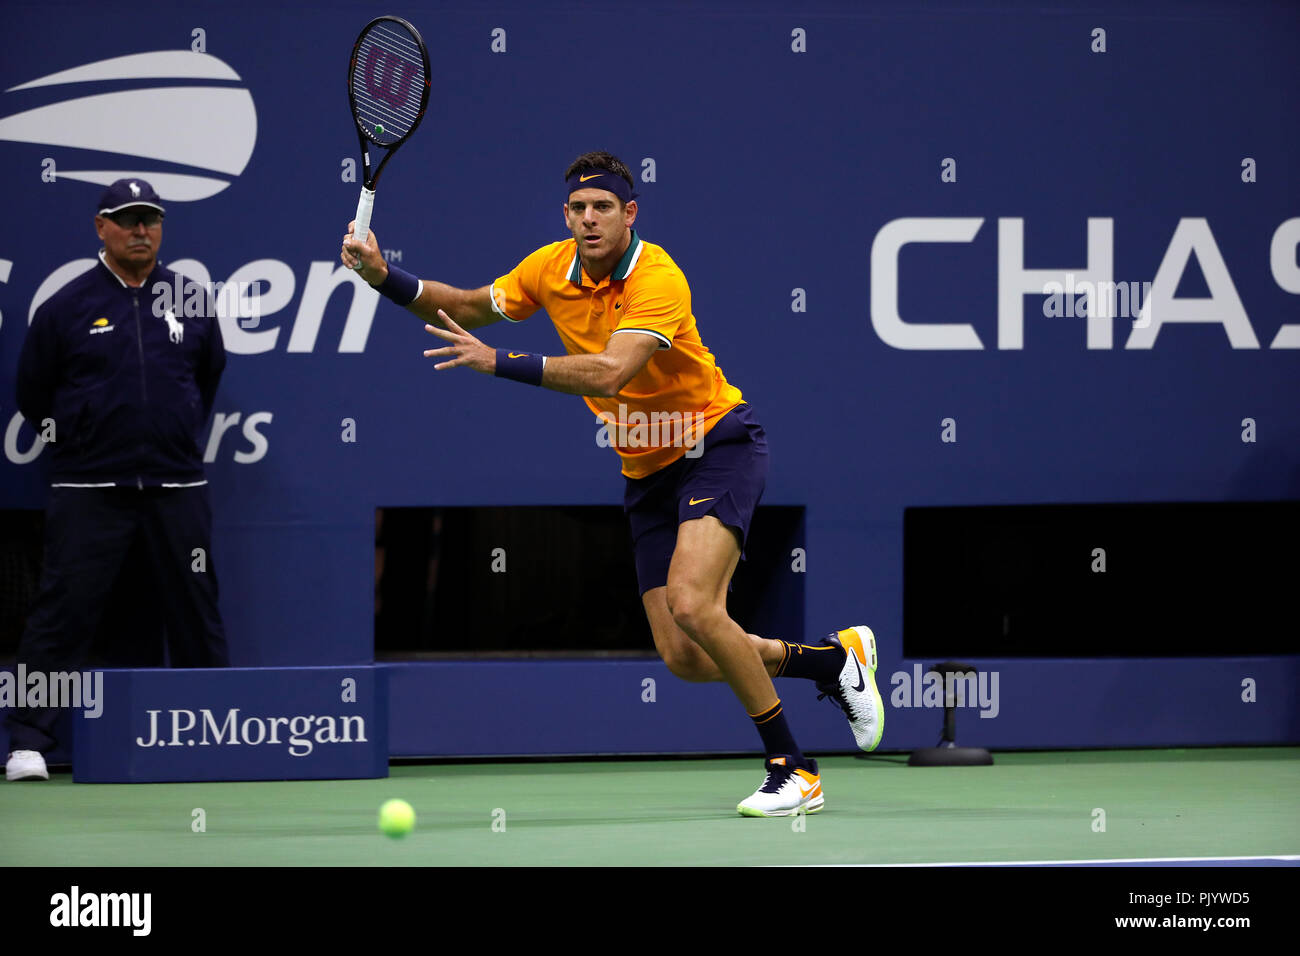 Flushing Meadows, New York, USA. September 9, 2018: US Open Tennis:   Juan Martin del Potro of Argentina serving  to Novak Djokovic of Serbia in the US Open men's final.   Djokovic won the match in straight sets to claim his third US Open title and 14th Grand Slam title overall. Credit: Adam Stoltman/Alamy Live News - Stock Image